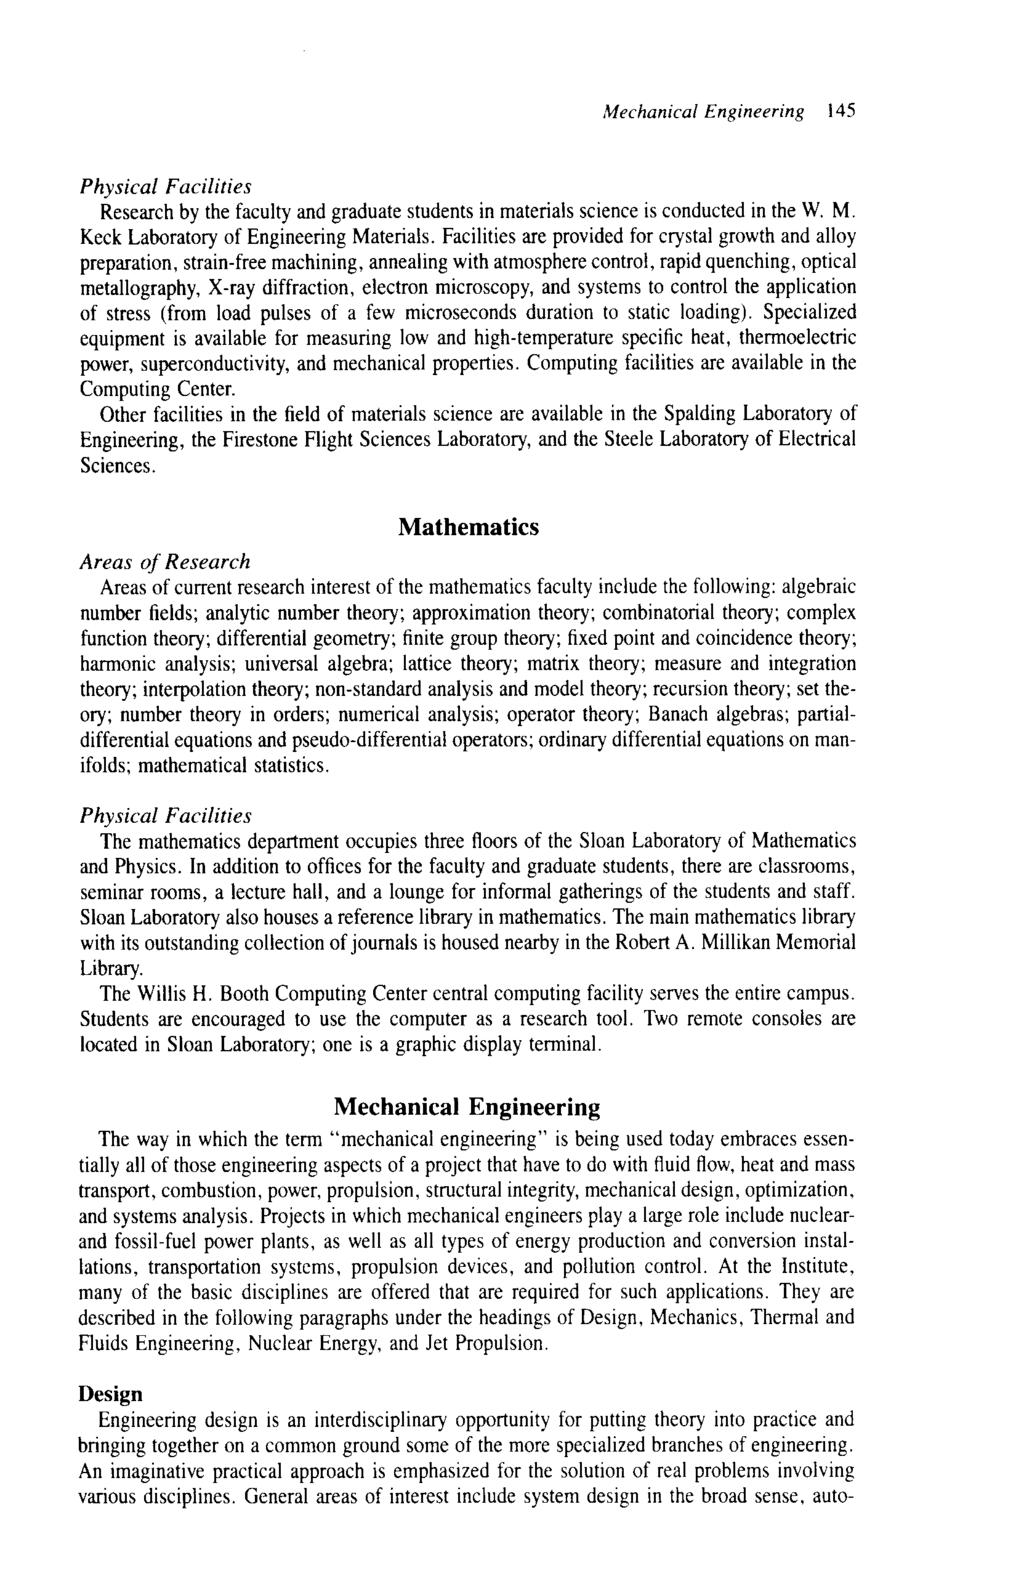 Information for students pdf mechanical engineering 145 physical facilities research by the faculty and graduate students in materials science is fandeluxe Image collections